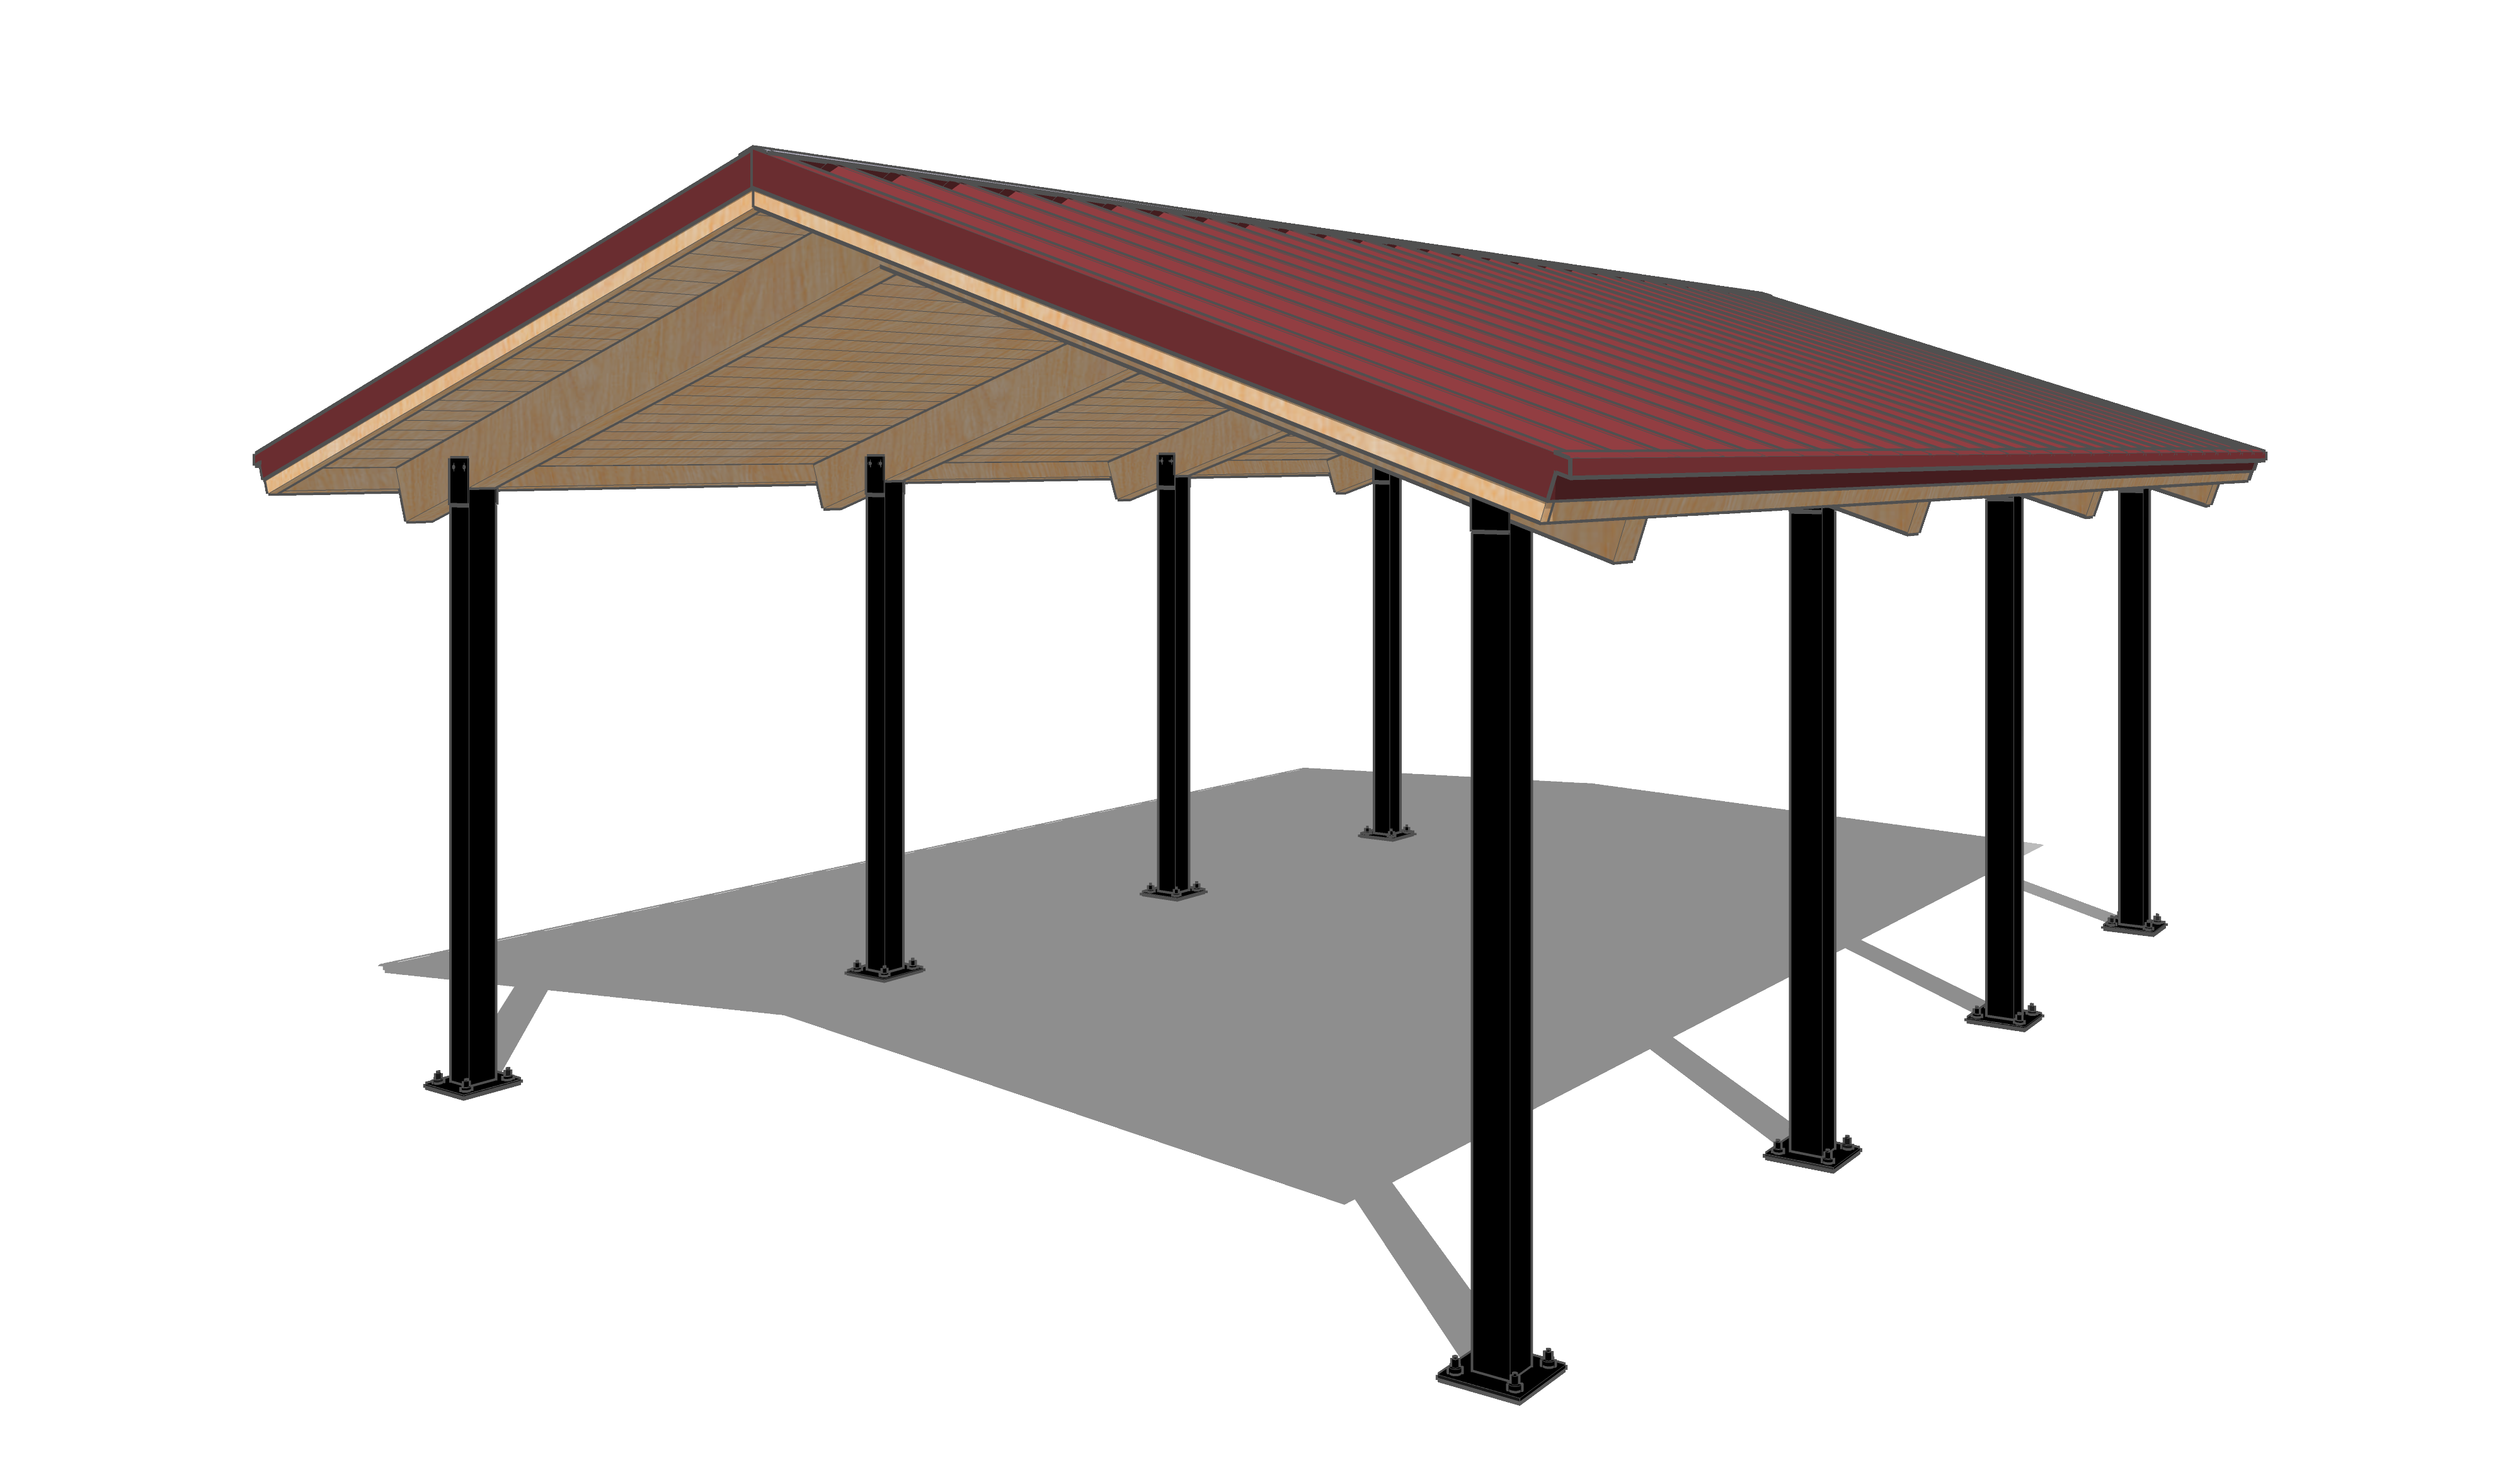 Woodworx Shelters Coverworx